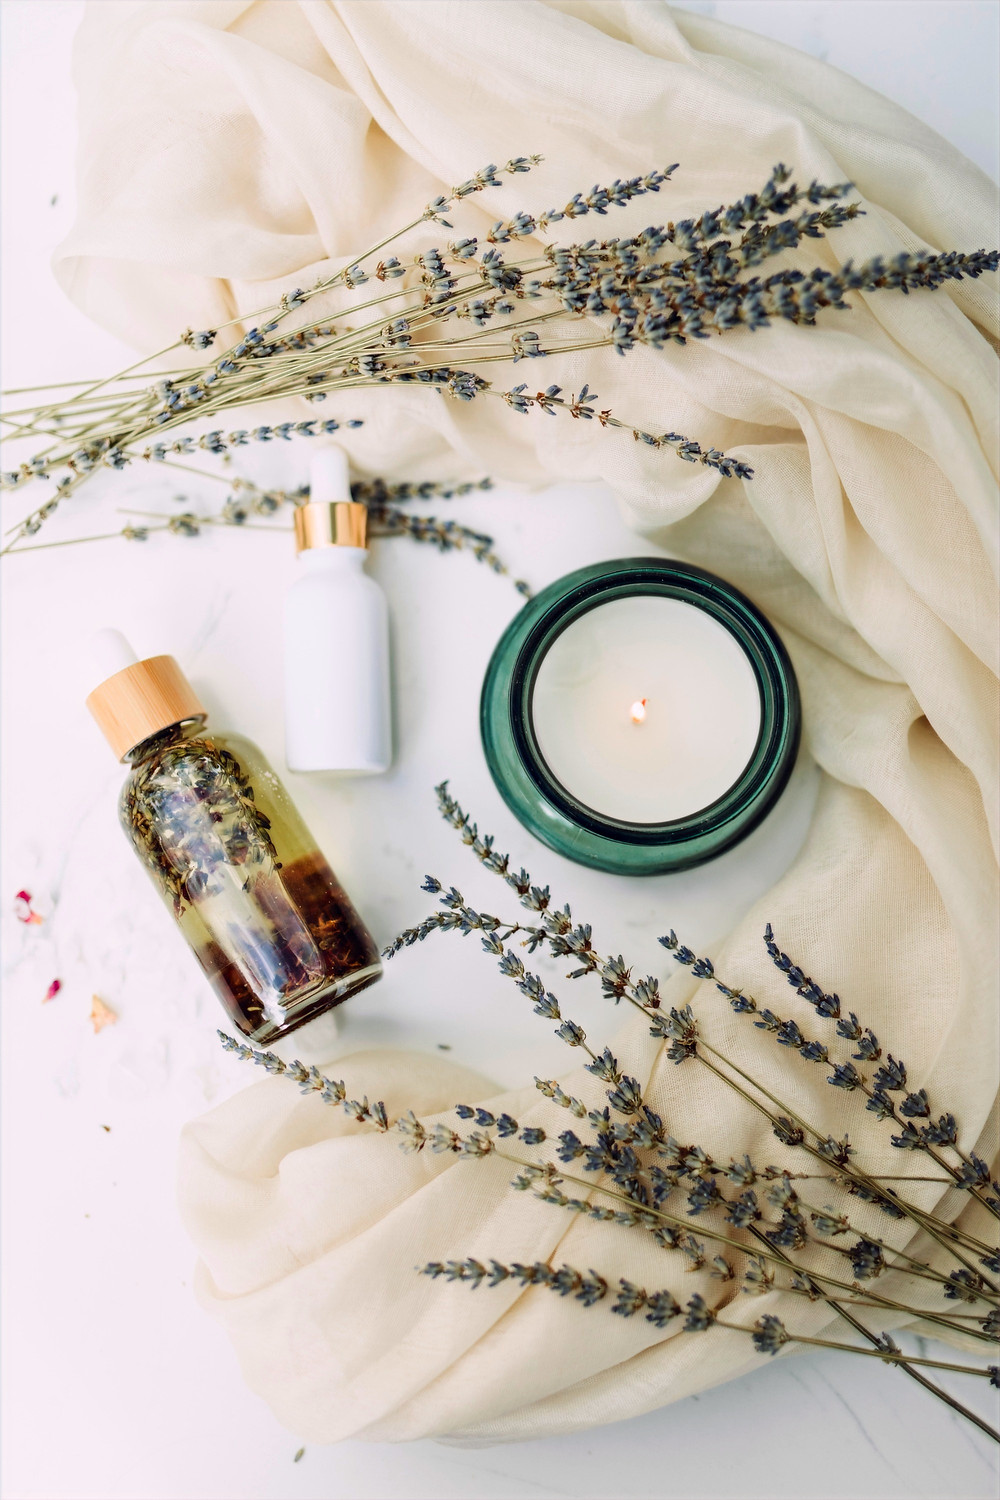 Skin cream, skin serum, a candle, and green plants lay on top of cream-colored sheets against a white background.